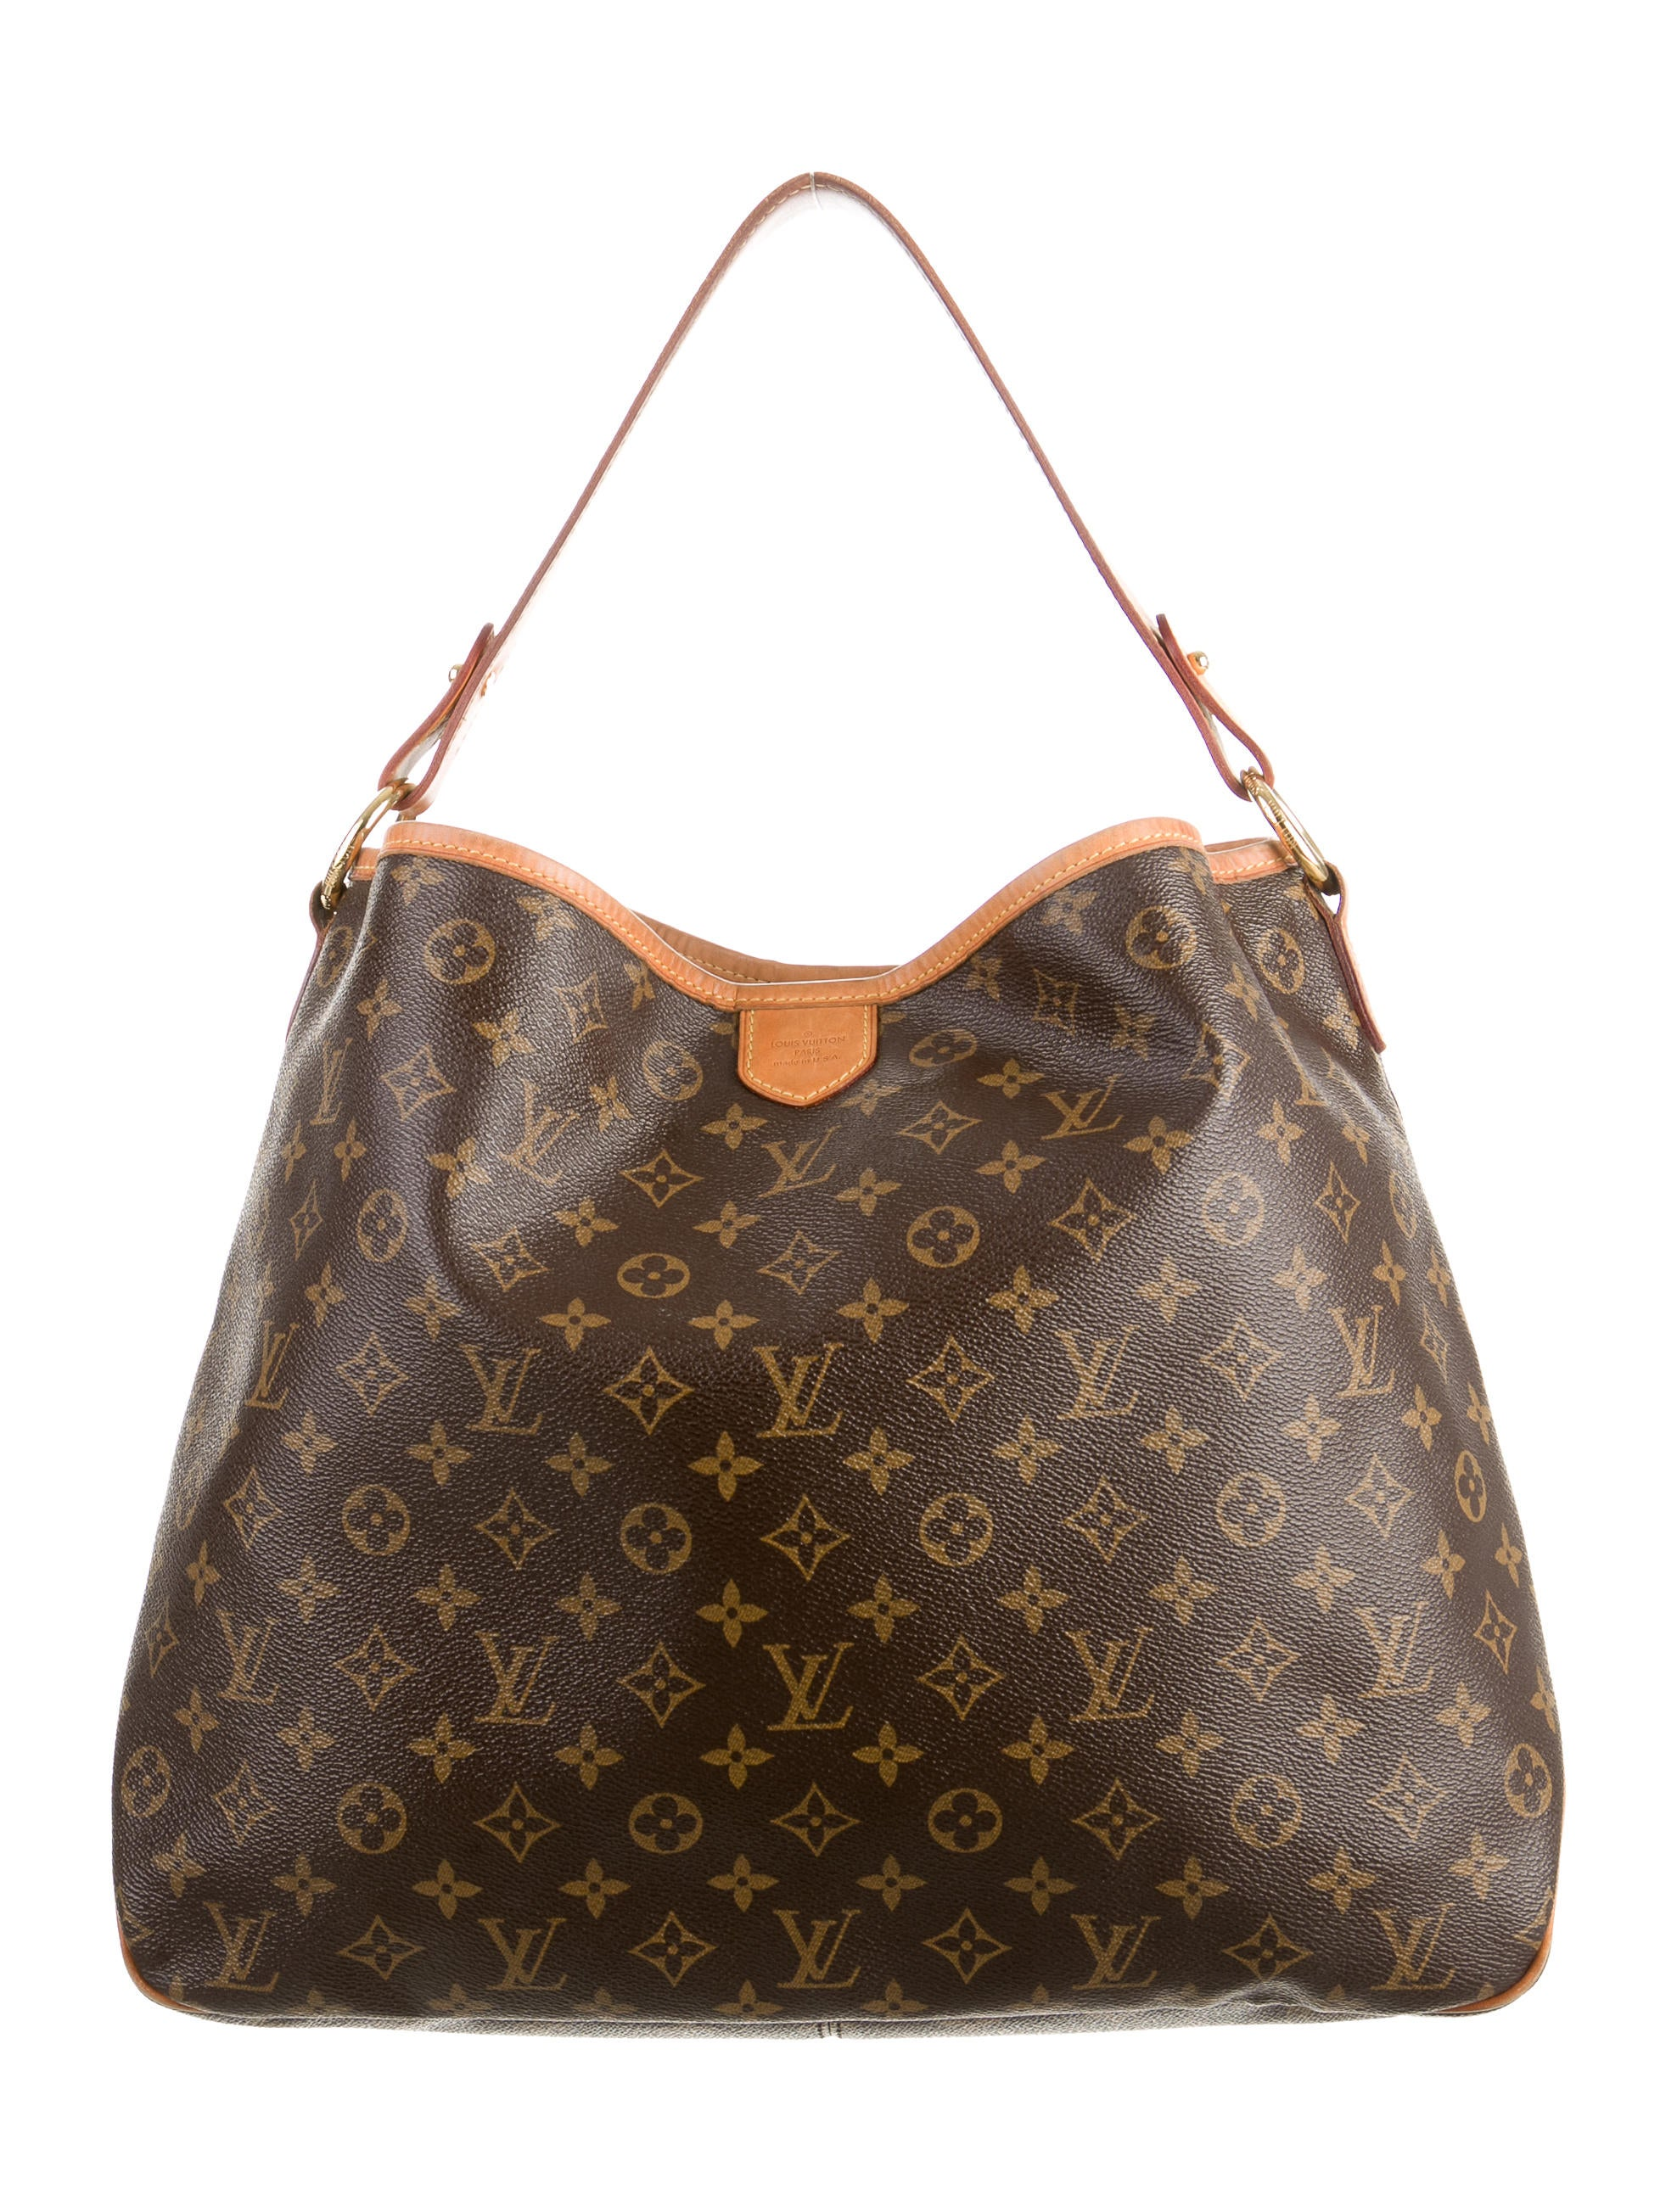 louis vuitton delightful mm. monogram delightful mm louis vuitton mm